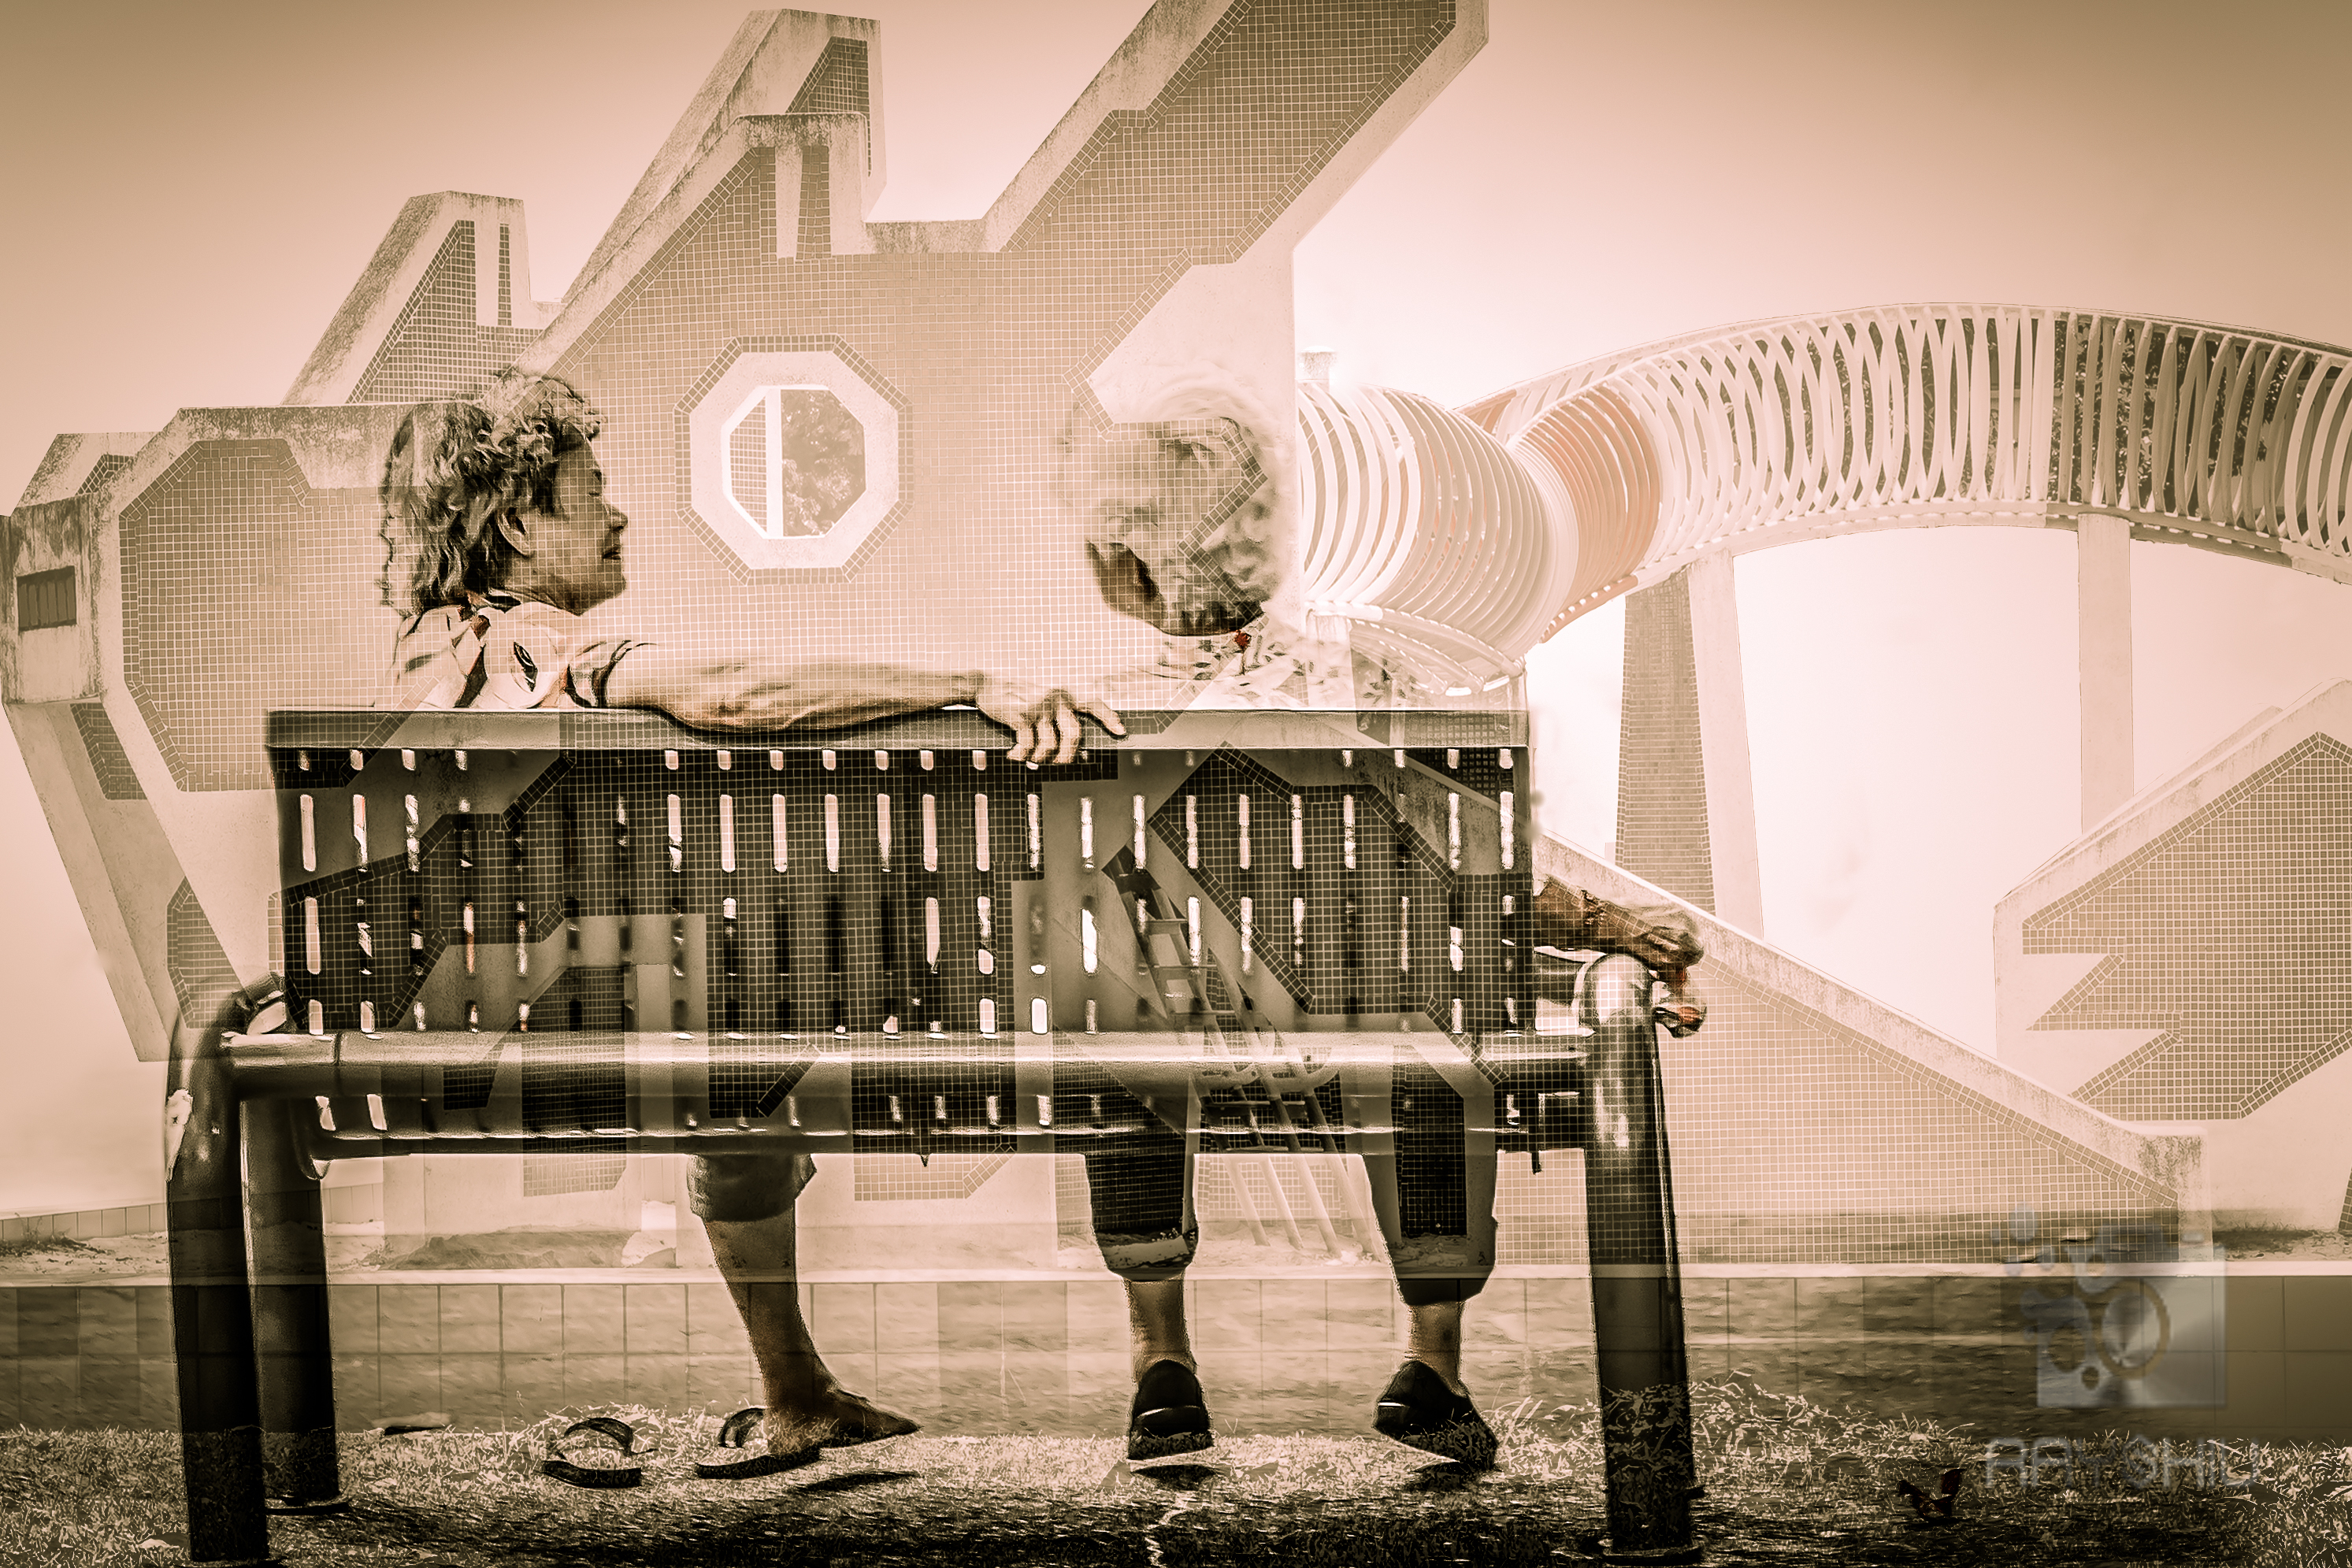 Elderly lady's carefree reminiscing at a deserted but well maintained playground.